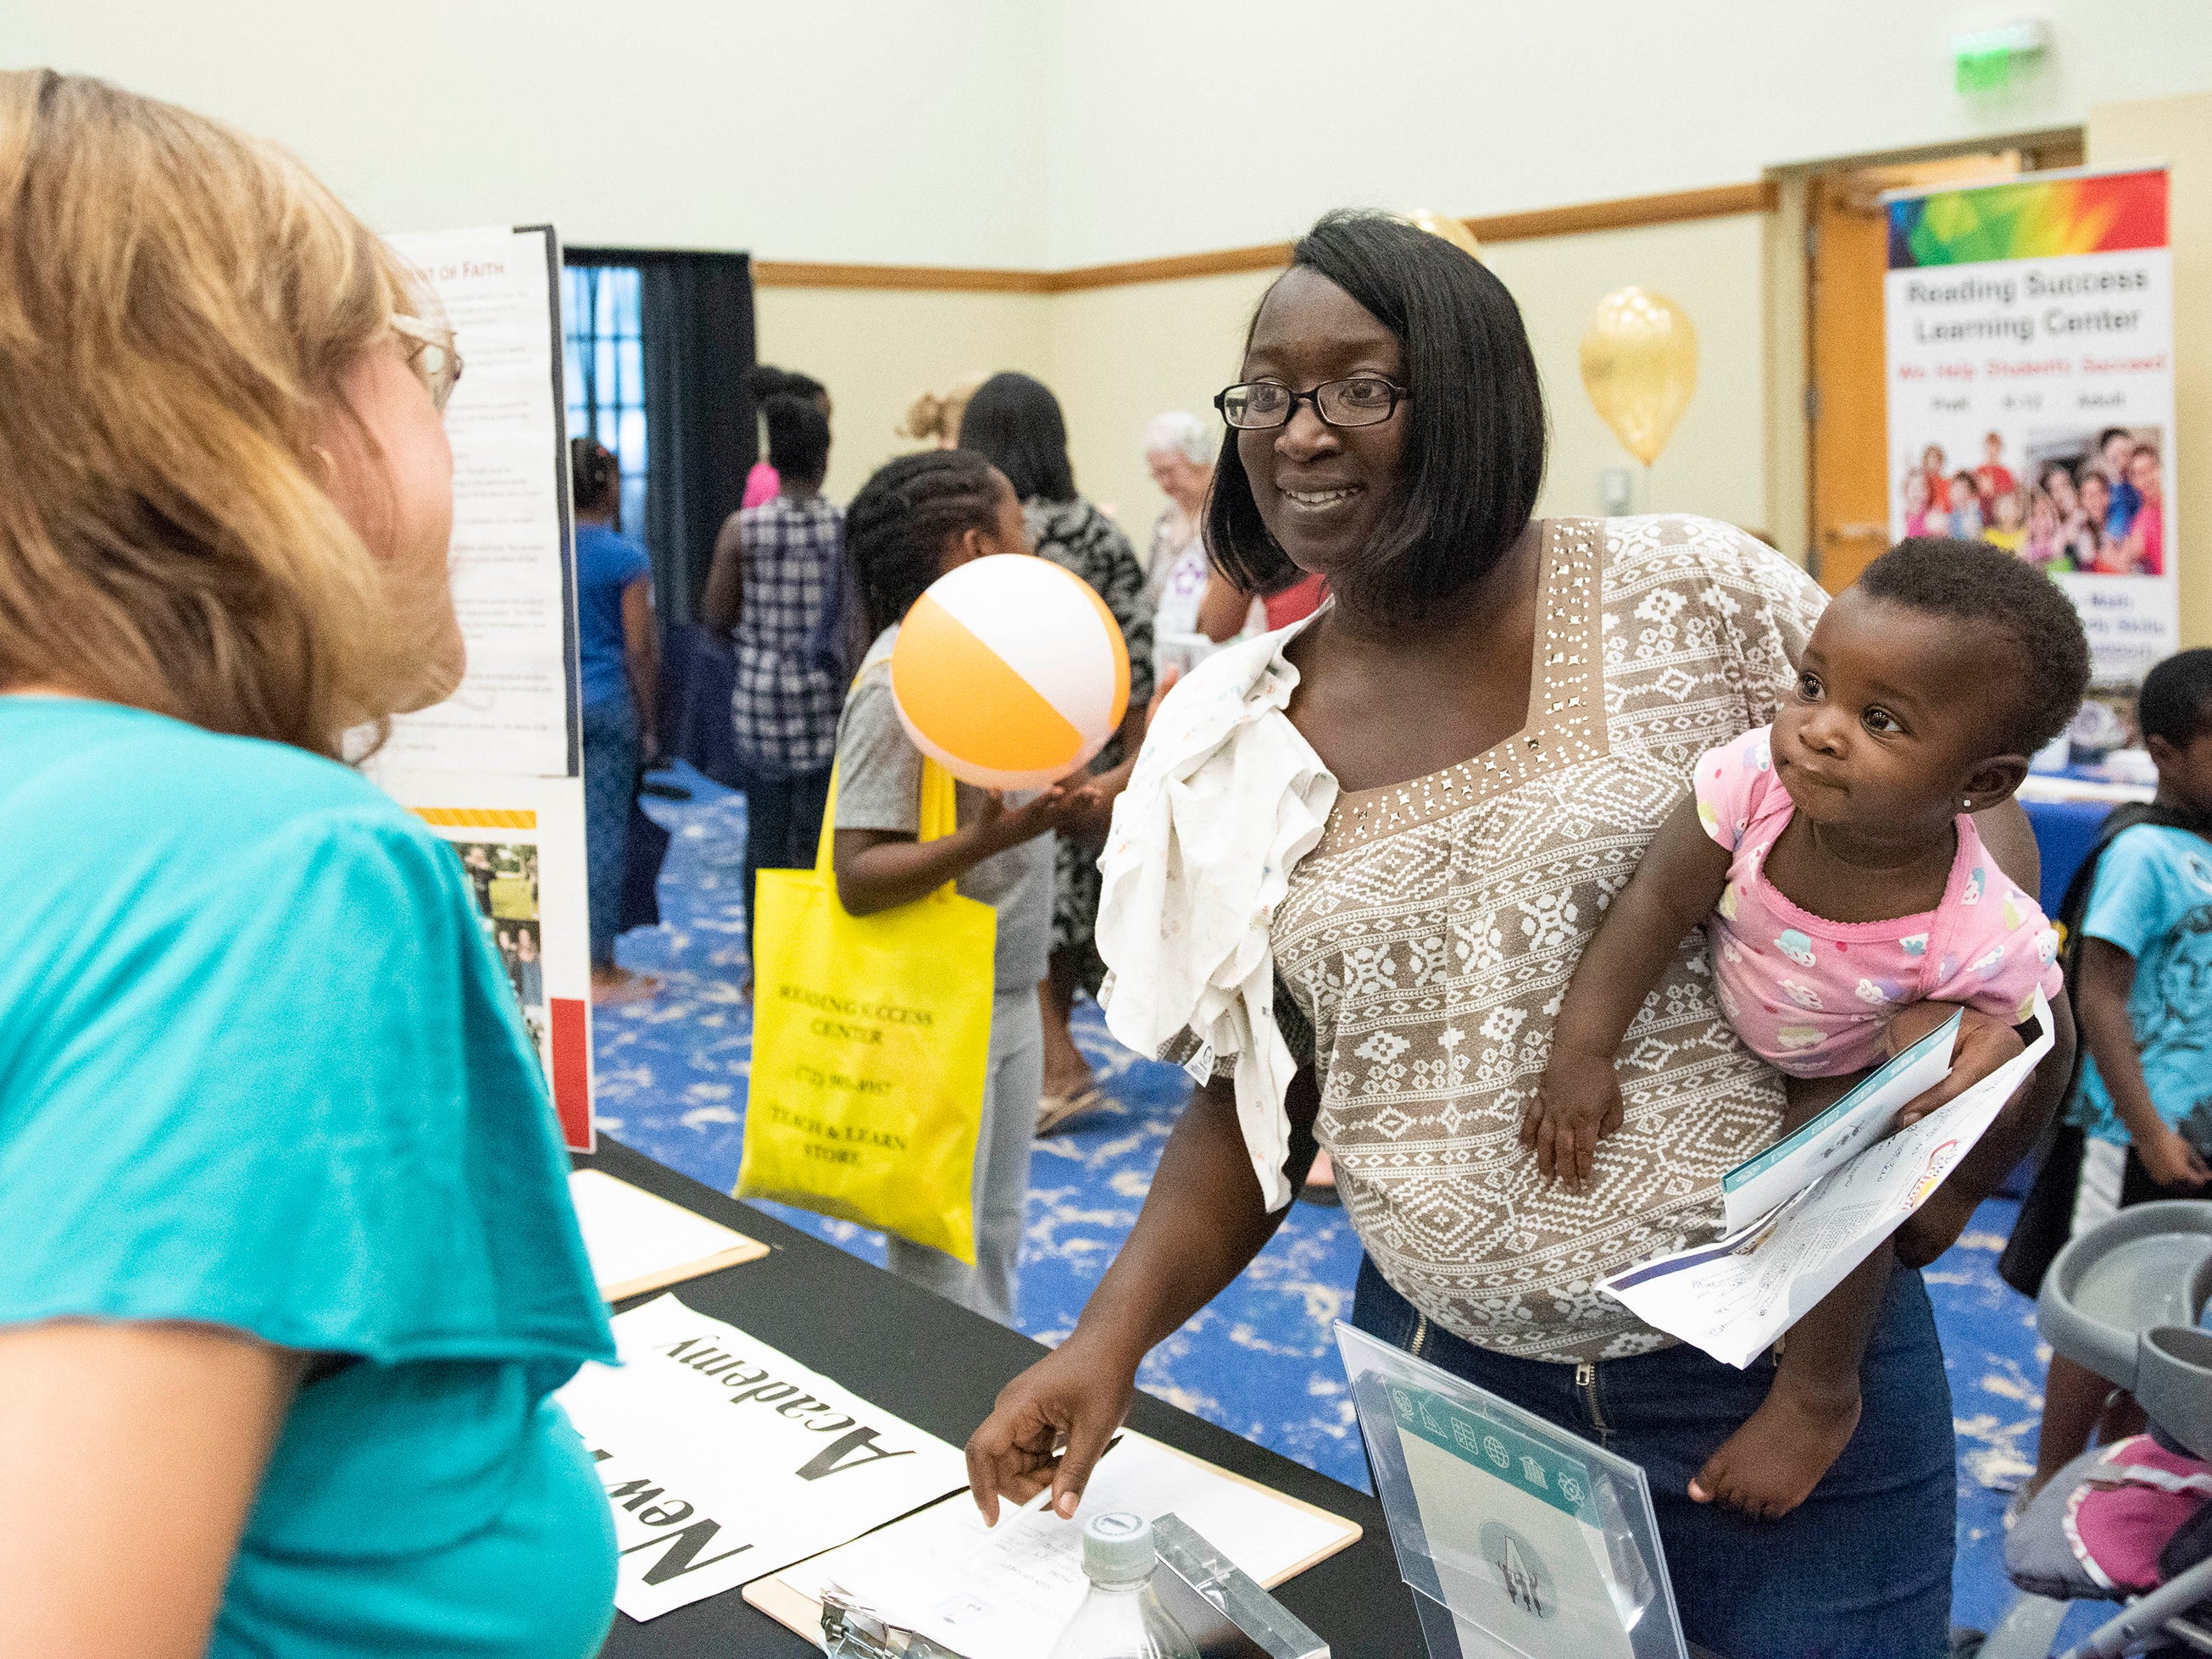 The Back to School Family Expo was held on Saturday, August 4, 2018, at the Port St. Lucie Civic Center in Port St. Lucie. The event included many family-oriented and educational vendors, food trucks, musical entertainment, dance performances and arts and crafts activities.